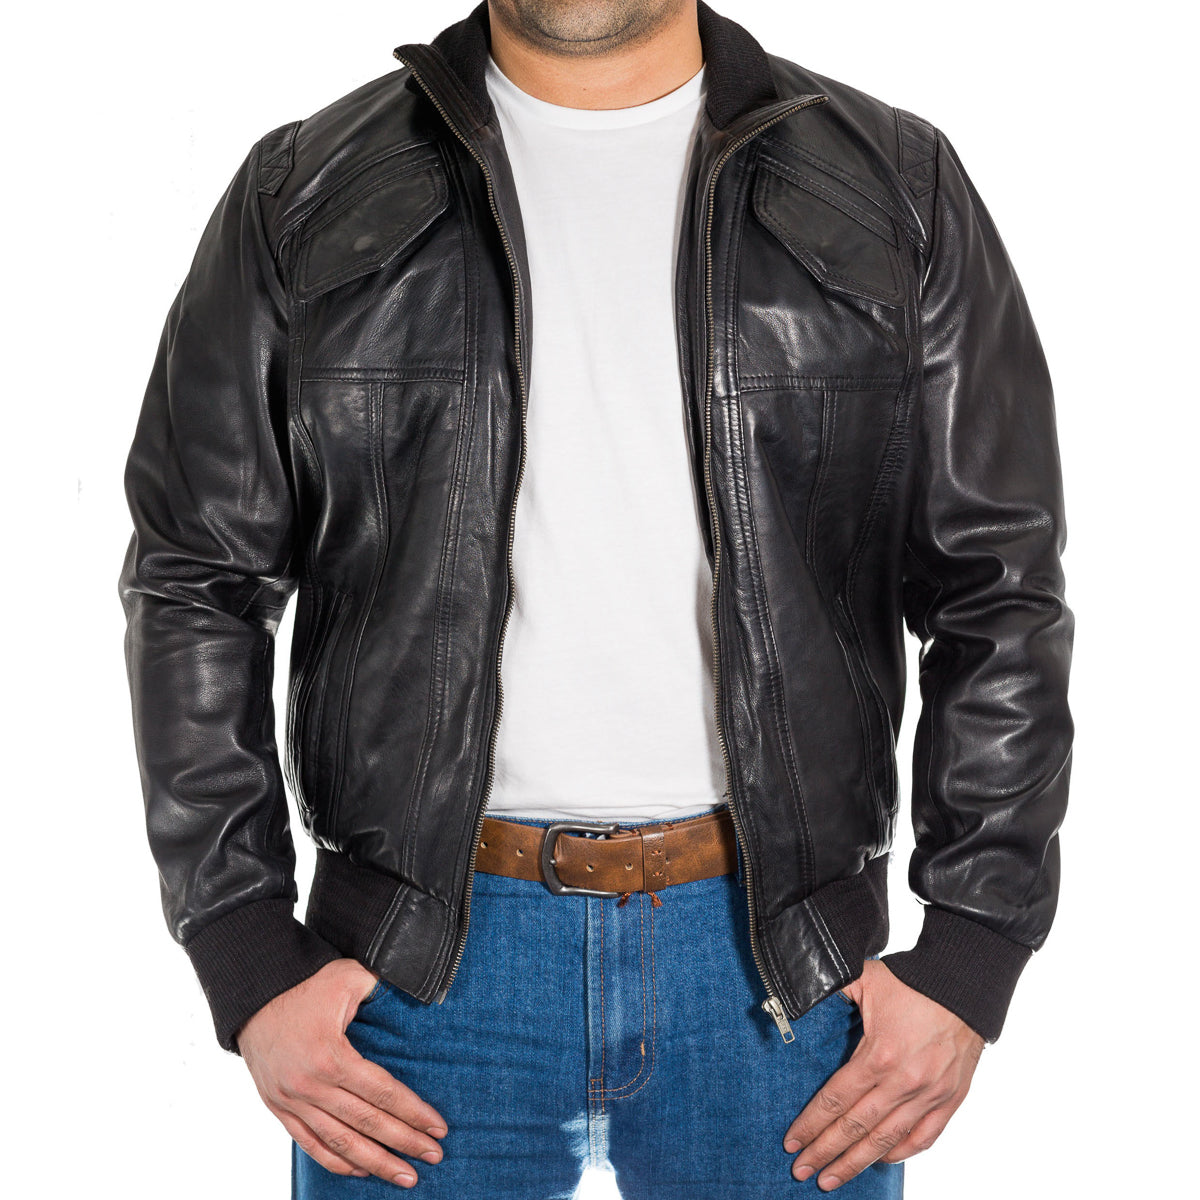 Mens classic bomber jacket with stand collar and rib knit detailing.